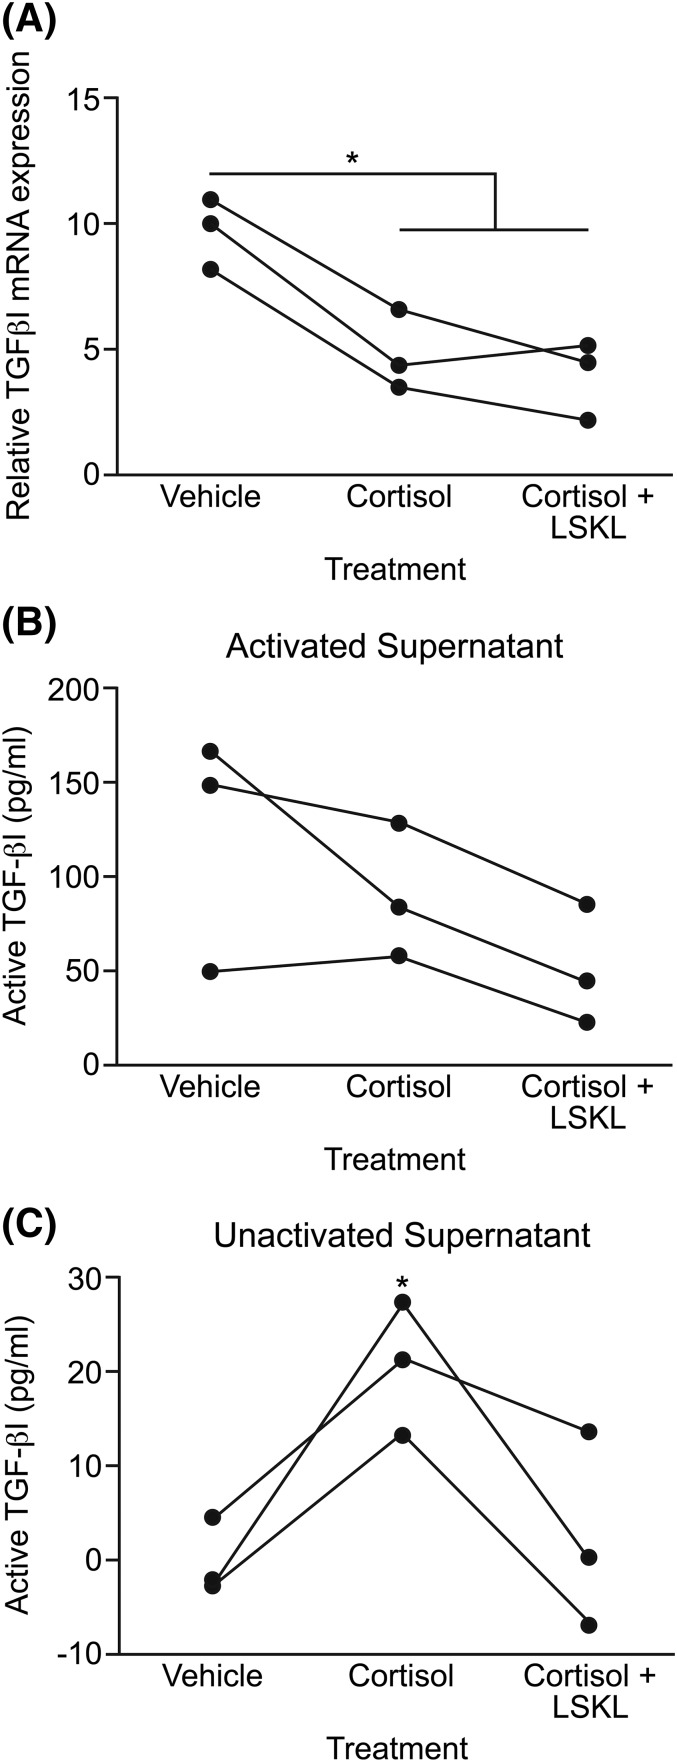 The regulation of TGF- β 1 by cortisol in primary human endometrial stromal cells. (A) TGF- β 1 mRNA after 24-hour treatment with vehicle, cortisol (1 μM), or cortisol (1 μM) plus a TSP-1 inhibitor (5 μM LSKL). (B) Active TGF- β 1 protein levels in experimental culture supernatants following pre-ELISA acid activation of latent TGF- β 1. (C) Active TGF- β 1 protein levels in the same culture supernatants without pre-ELISA acid activation (* P